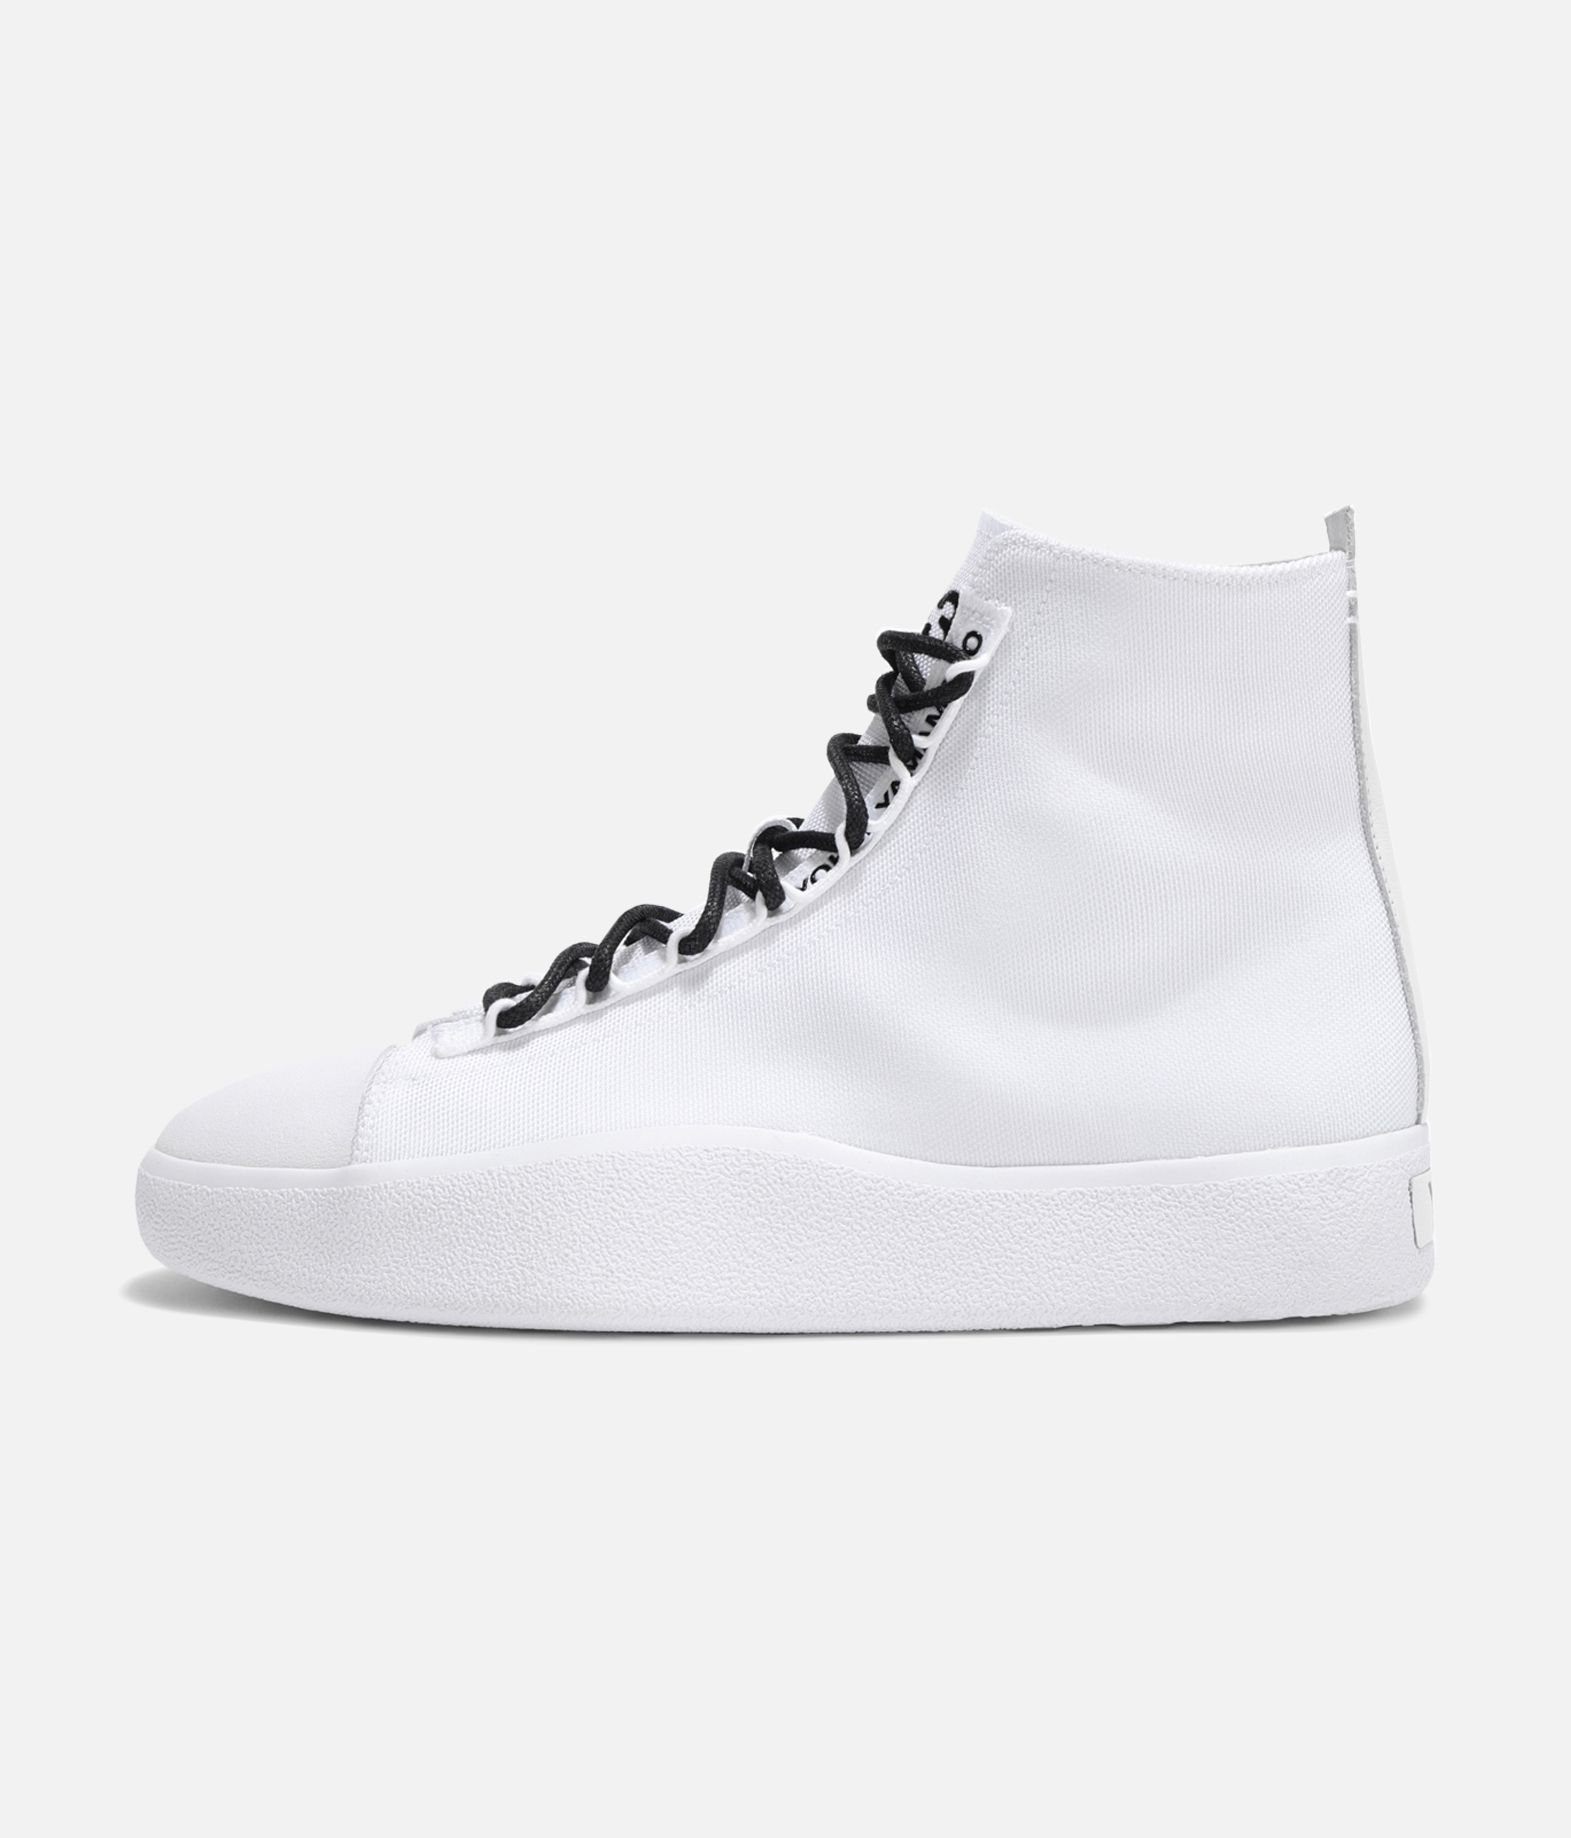 8e6714ea7 ... Y-3 Y-3 Bashyo High-top sneakers E f ...